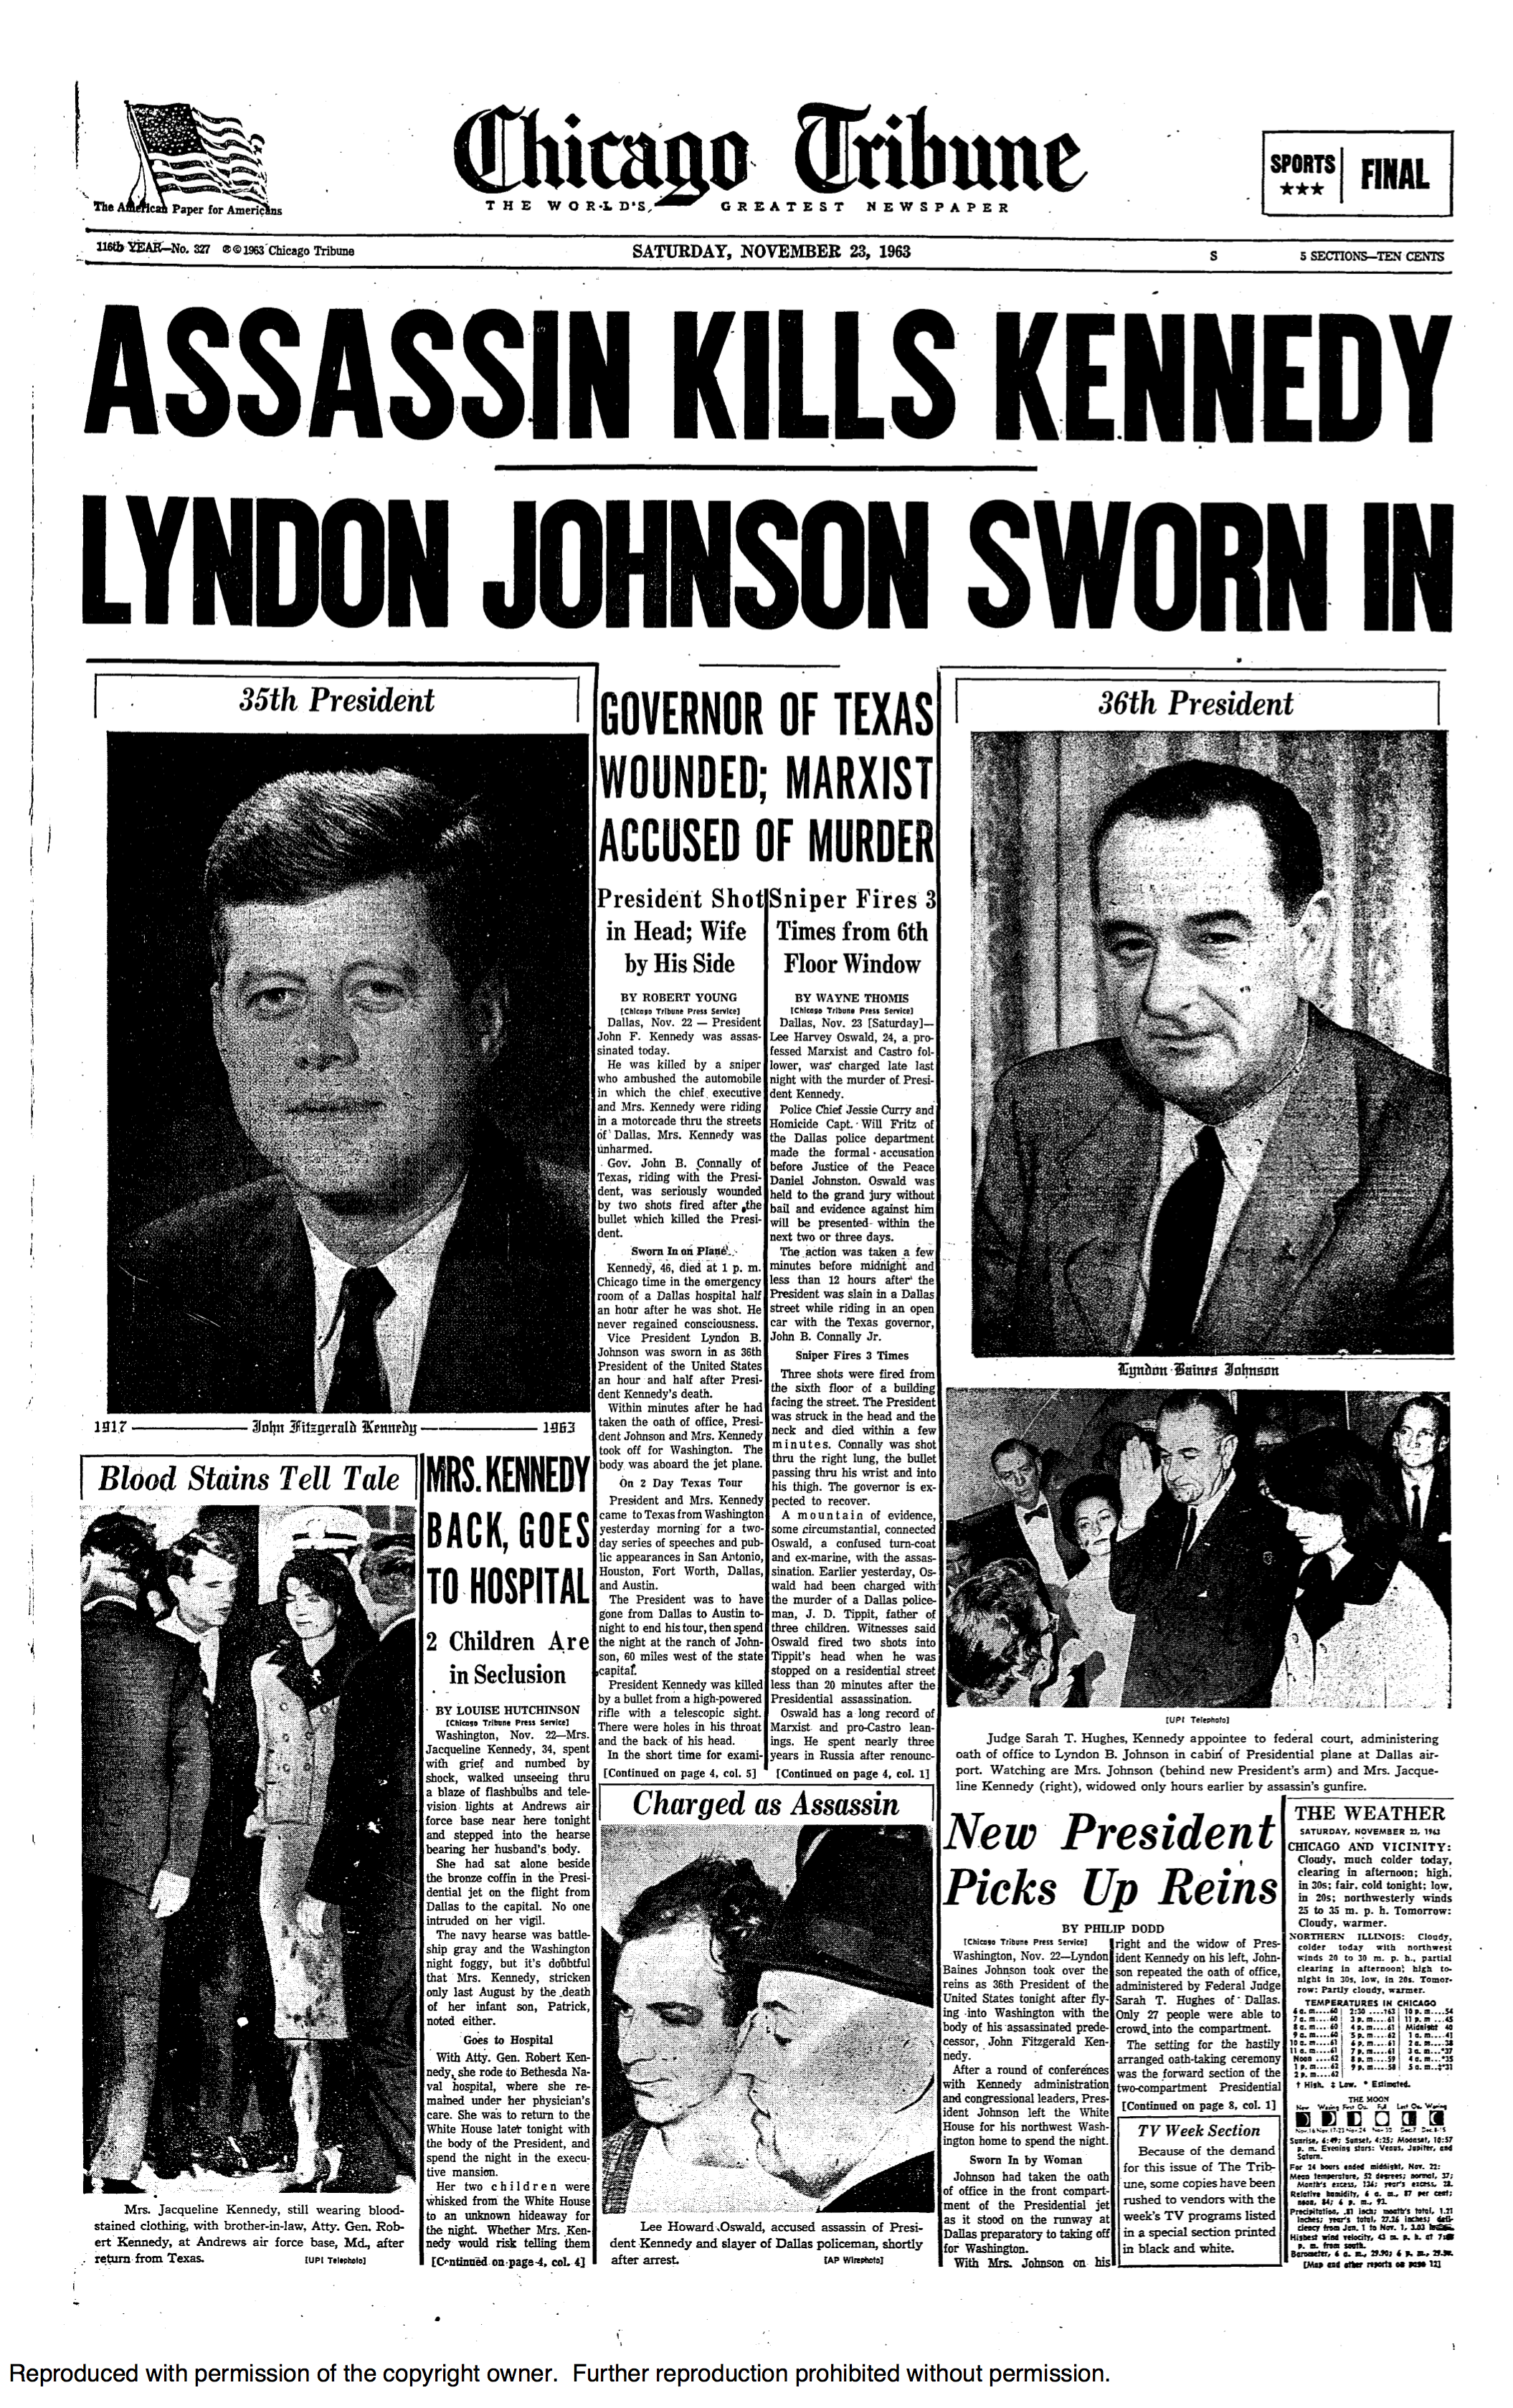 The presidency and assassination of us president john f kennedy in 1963